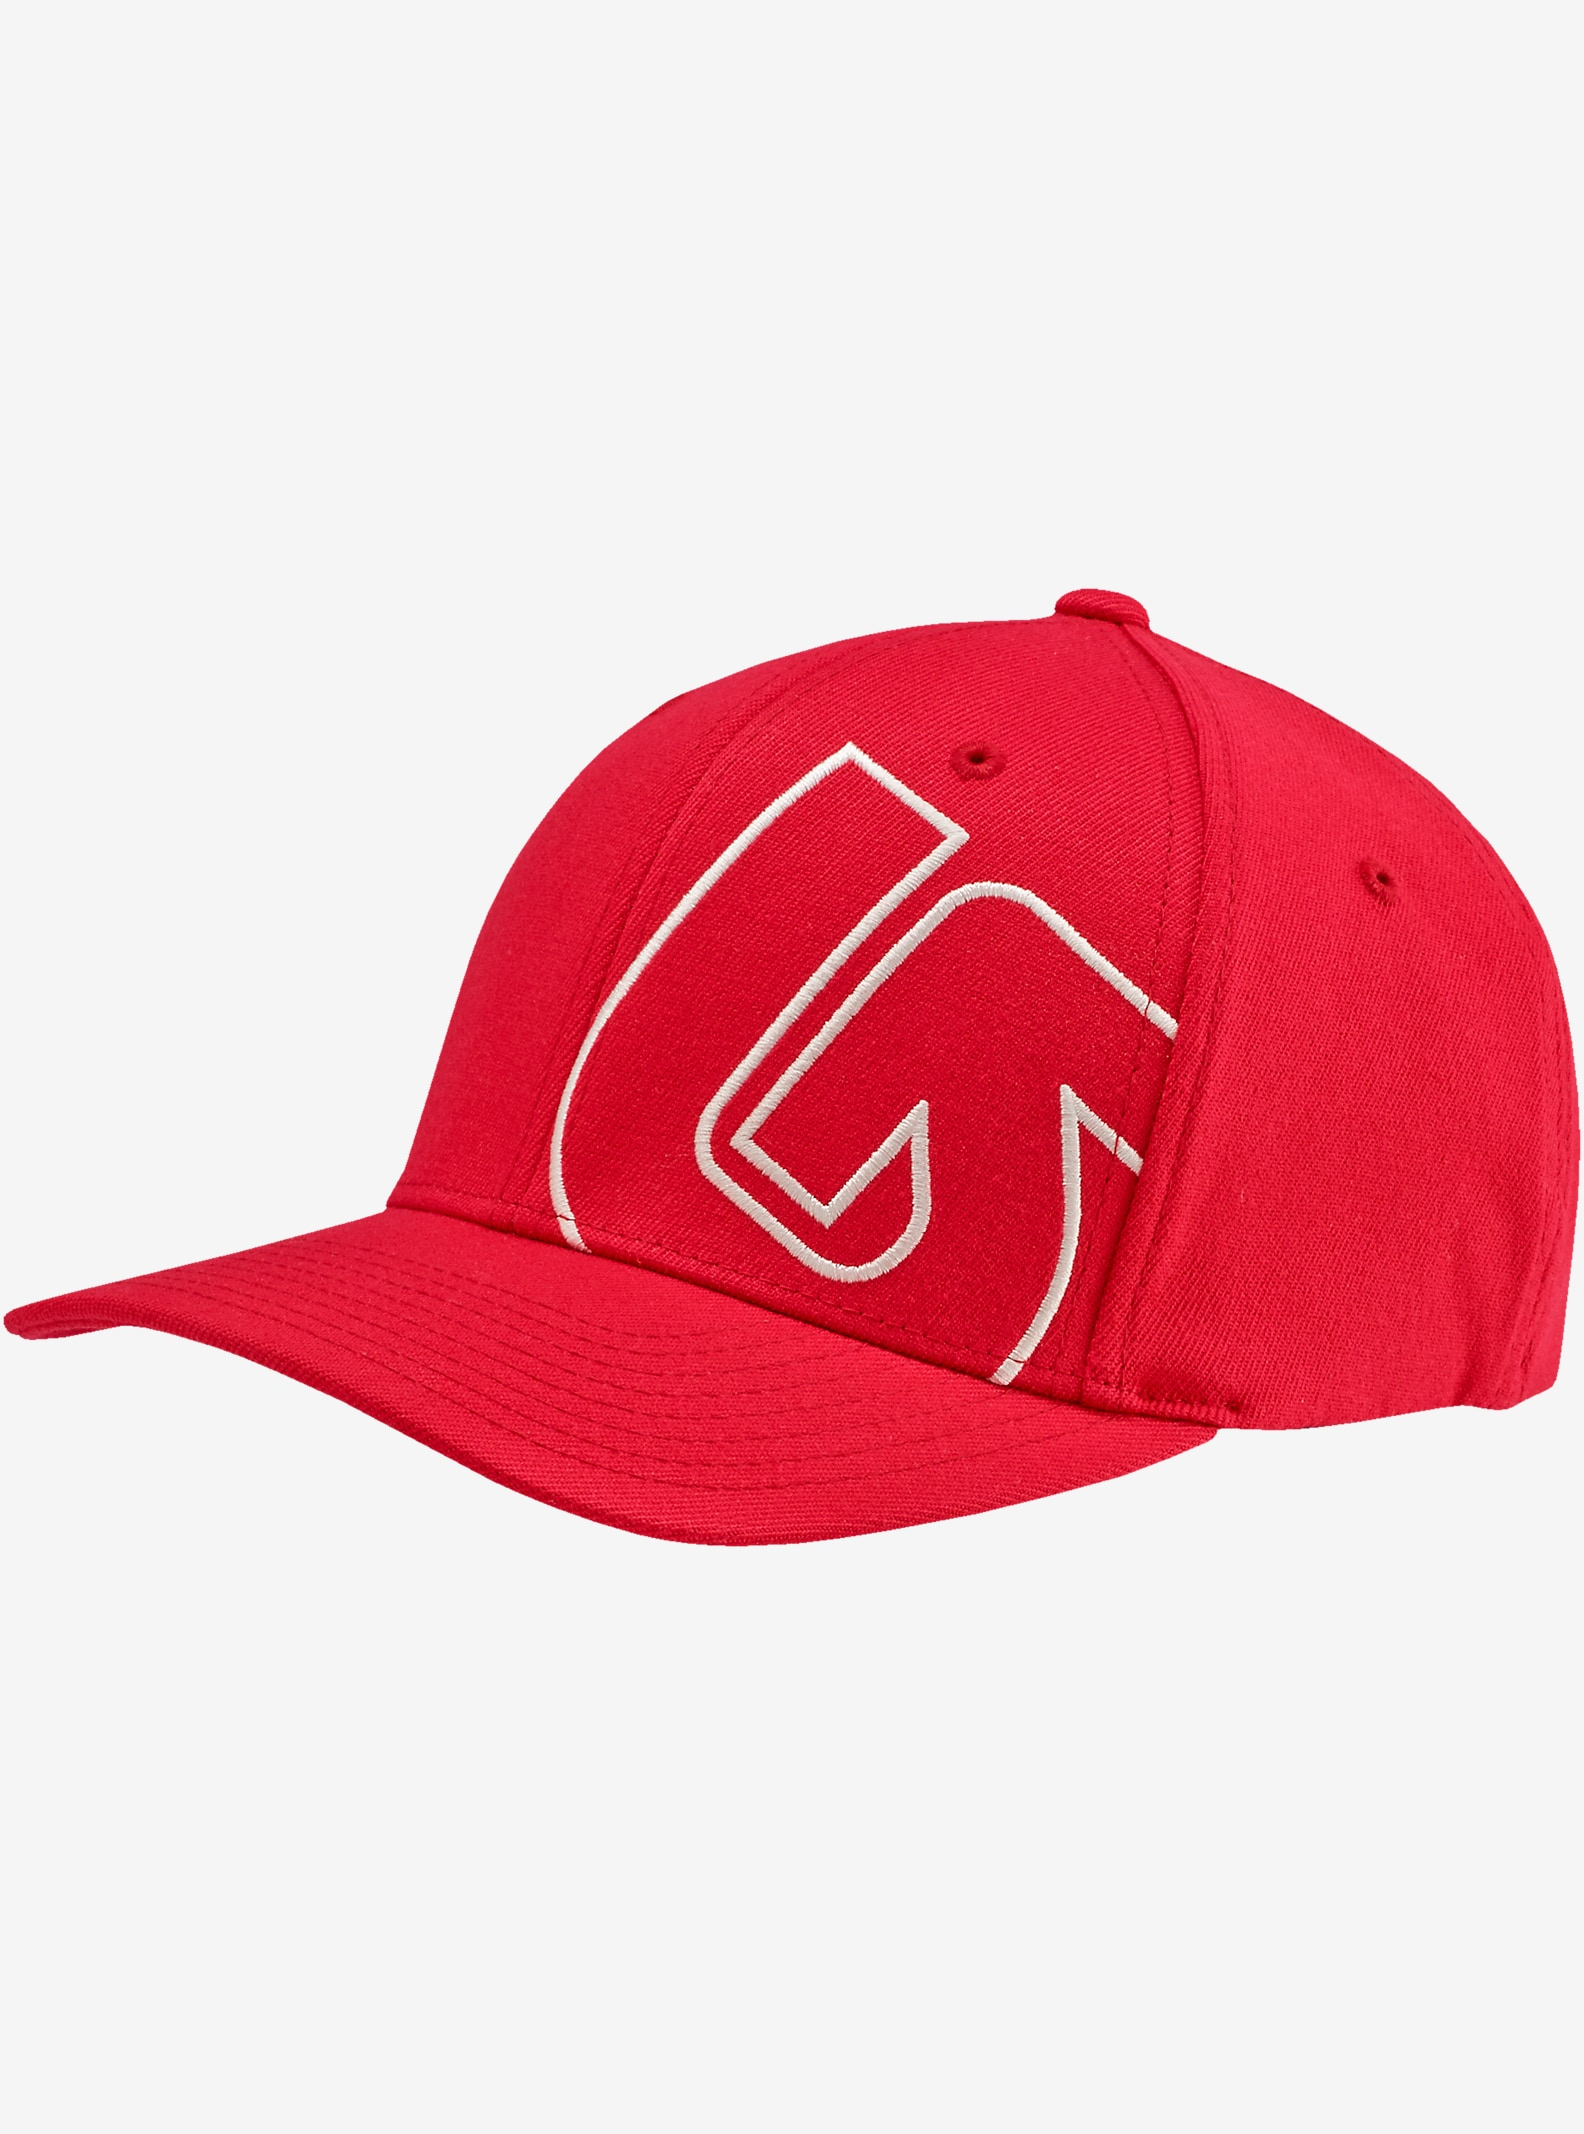 Burton Boys' Slidestyle Flex Fit Hat shown in Mars Red